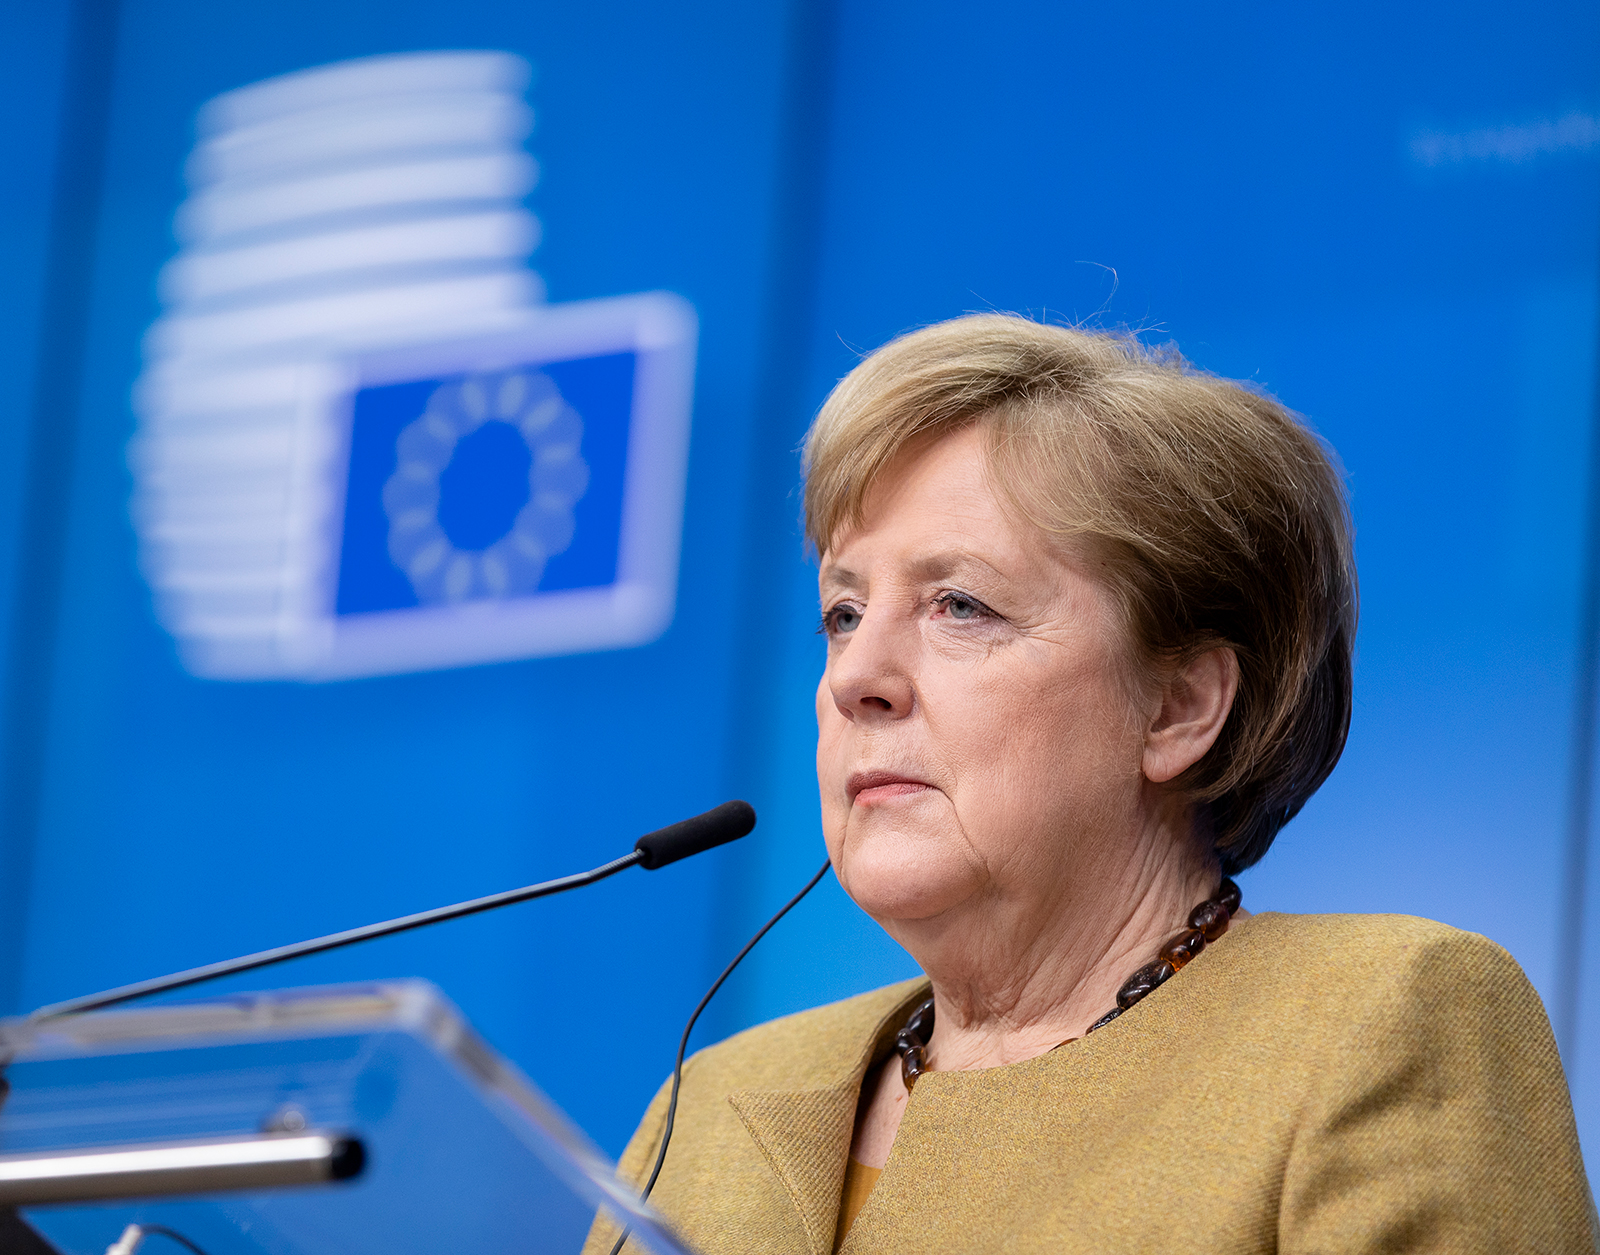 German Chancellor Angela Merkel addresses the media on the second day of an EU summit in Brussels on December 11.